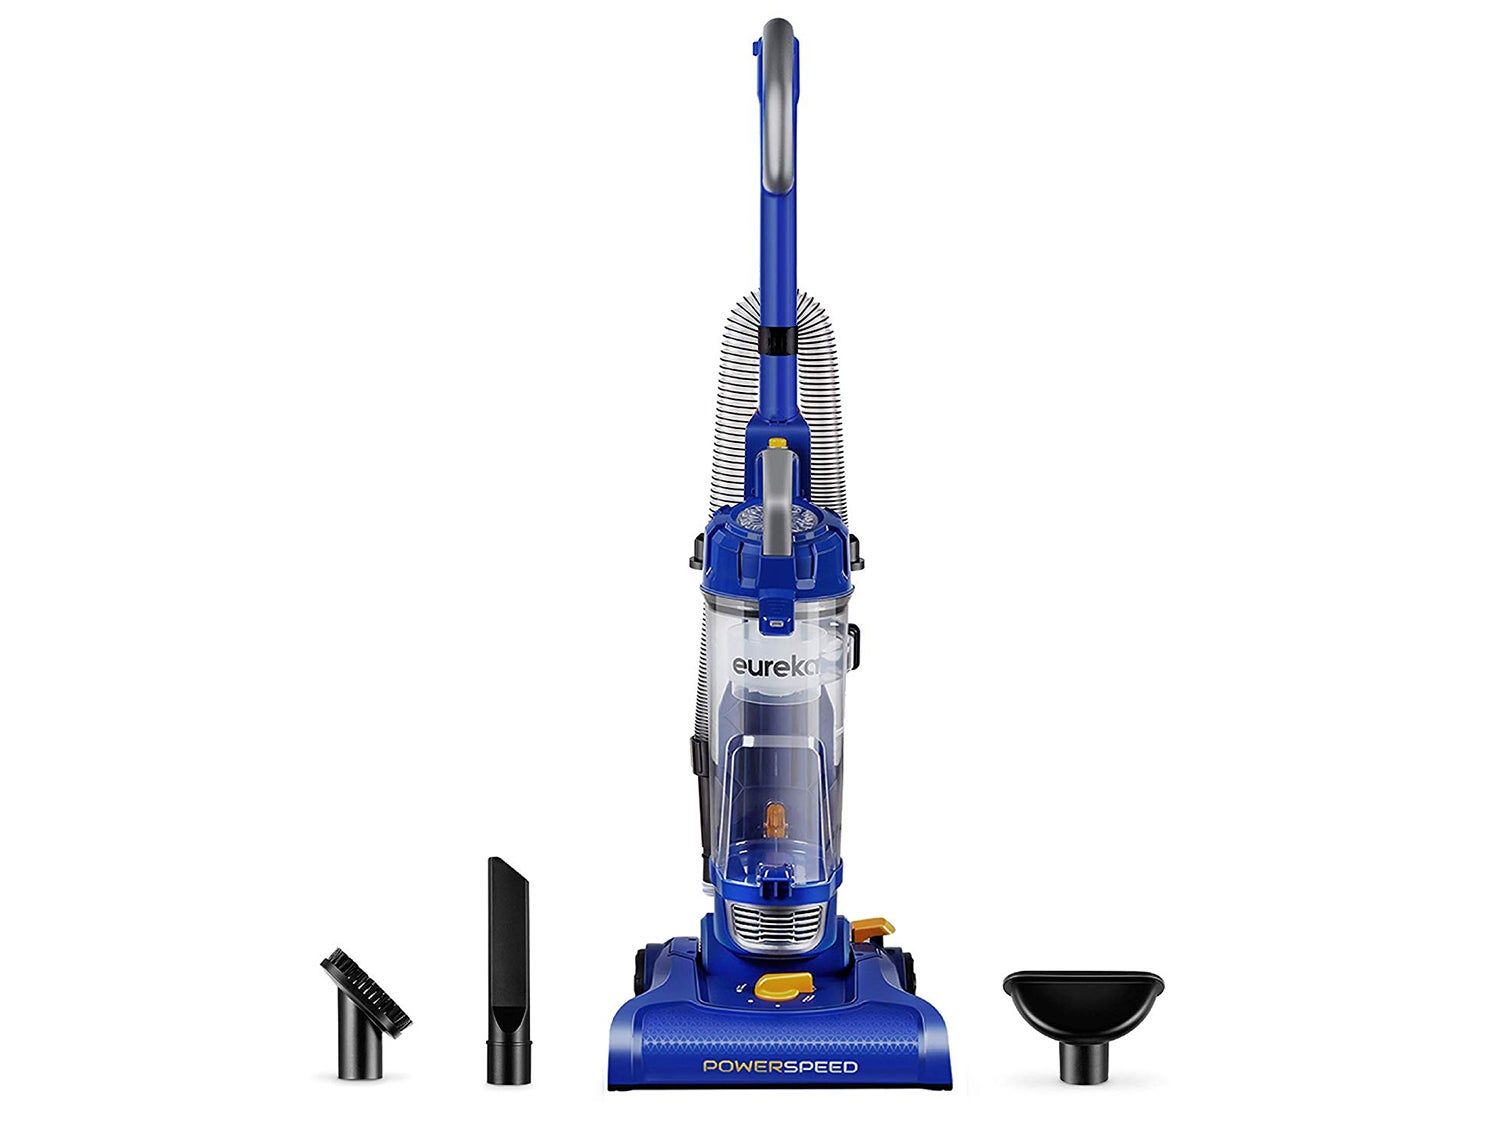 Eureka NEU182A PowerSpeed Lightweight Bagless Upright Vacuum Cleaner